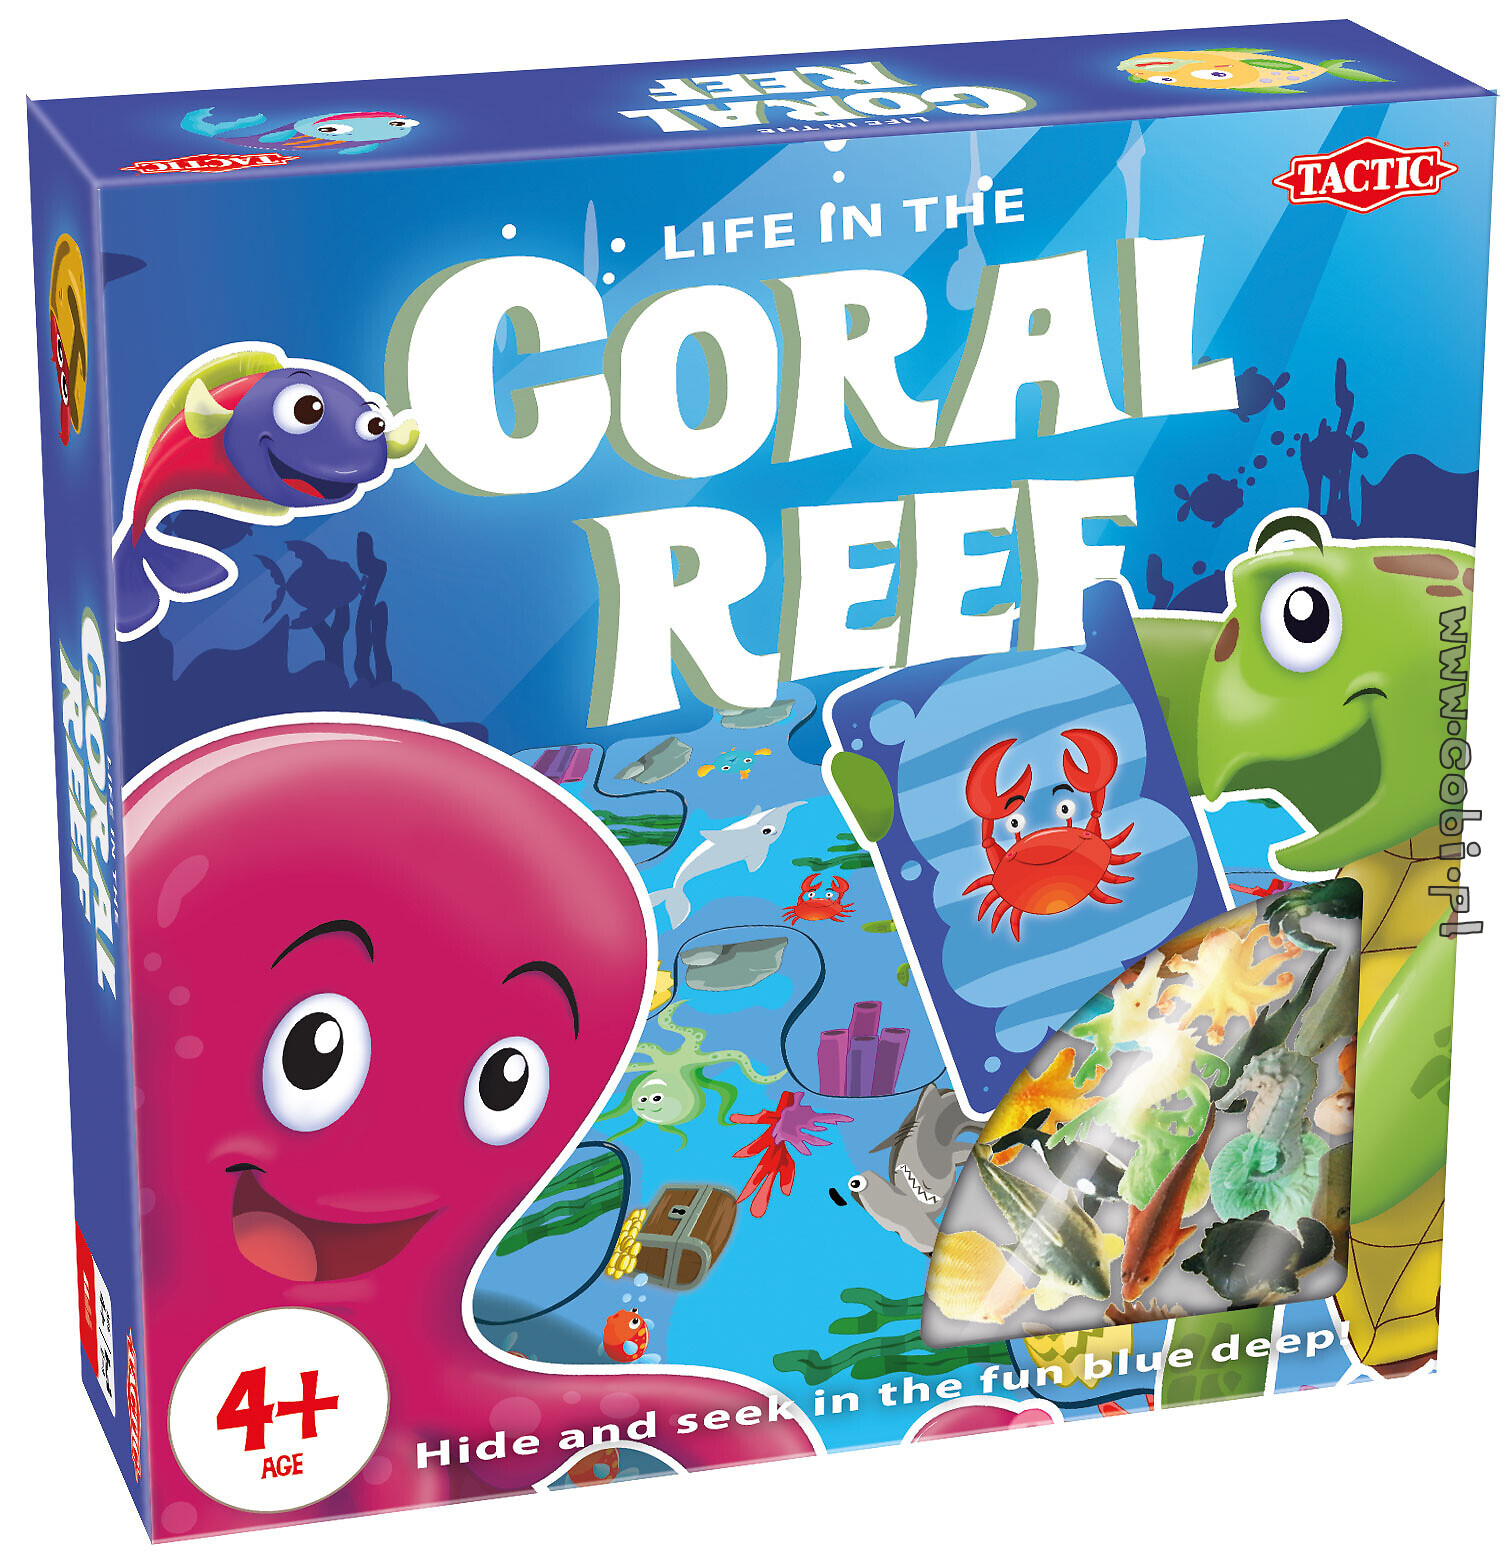 Live in the Coral Reef